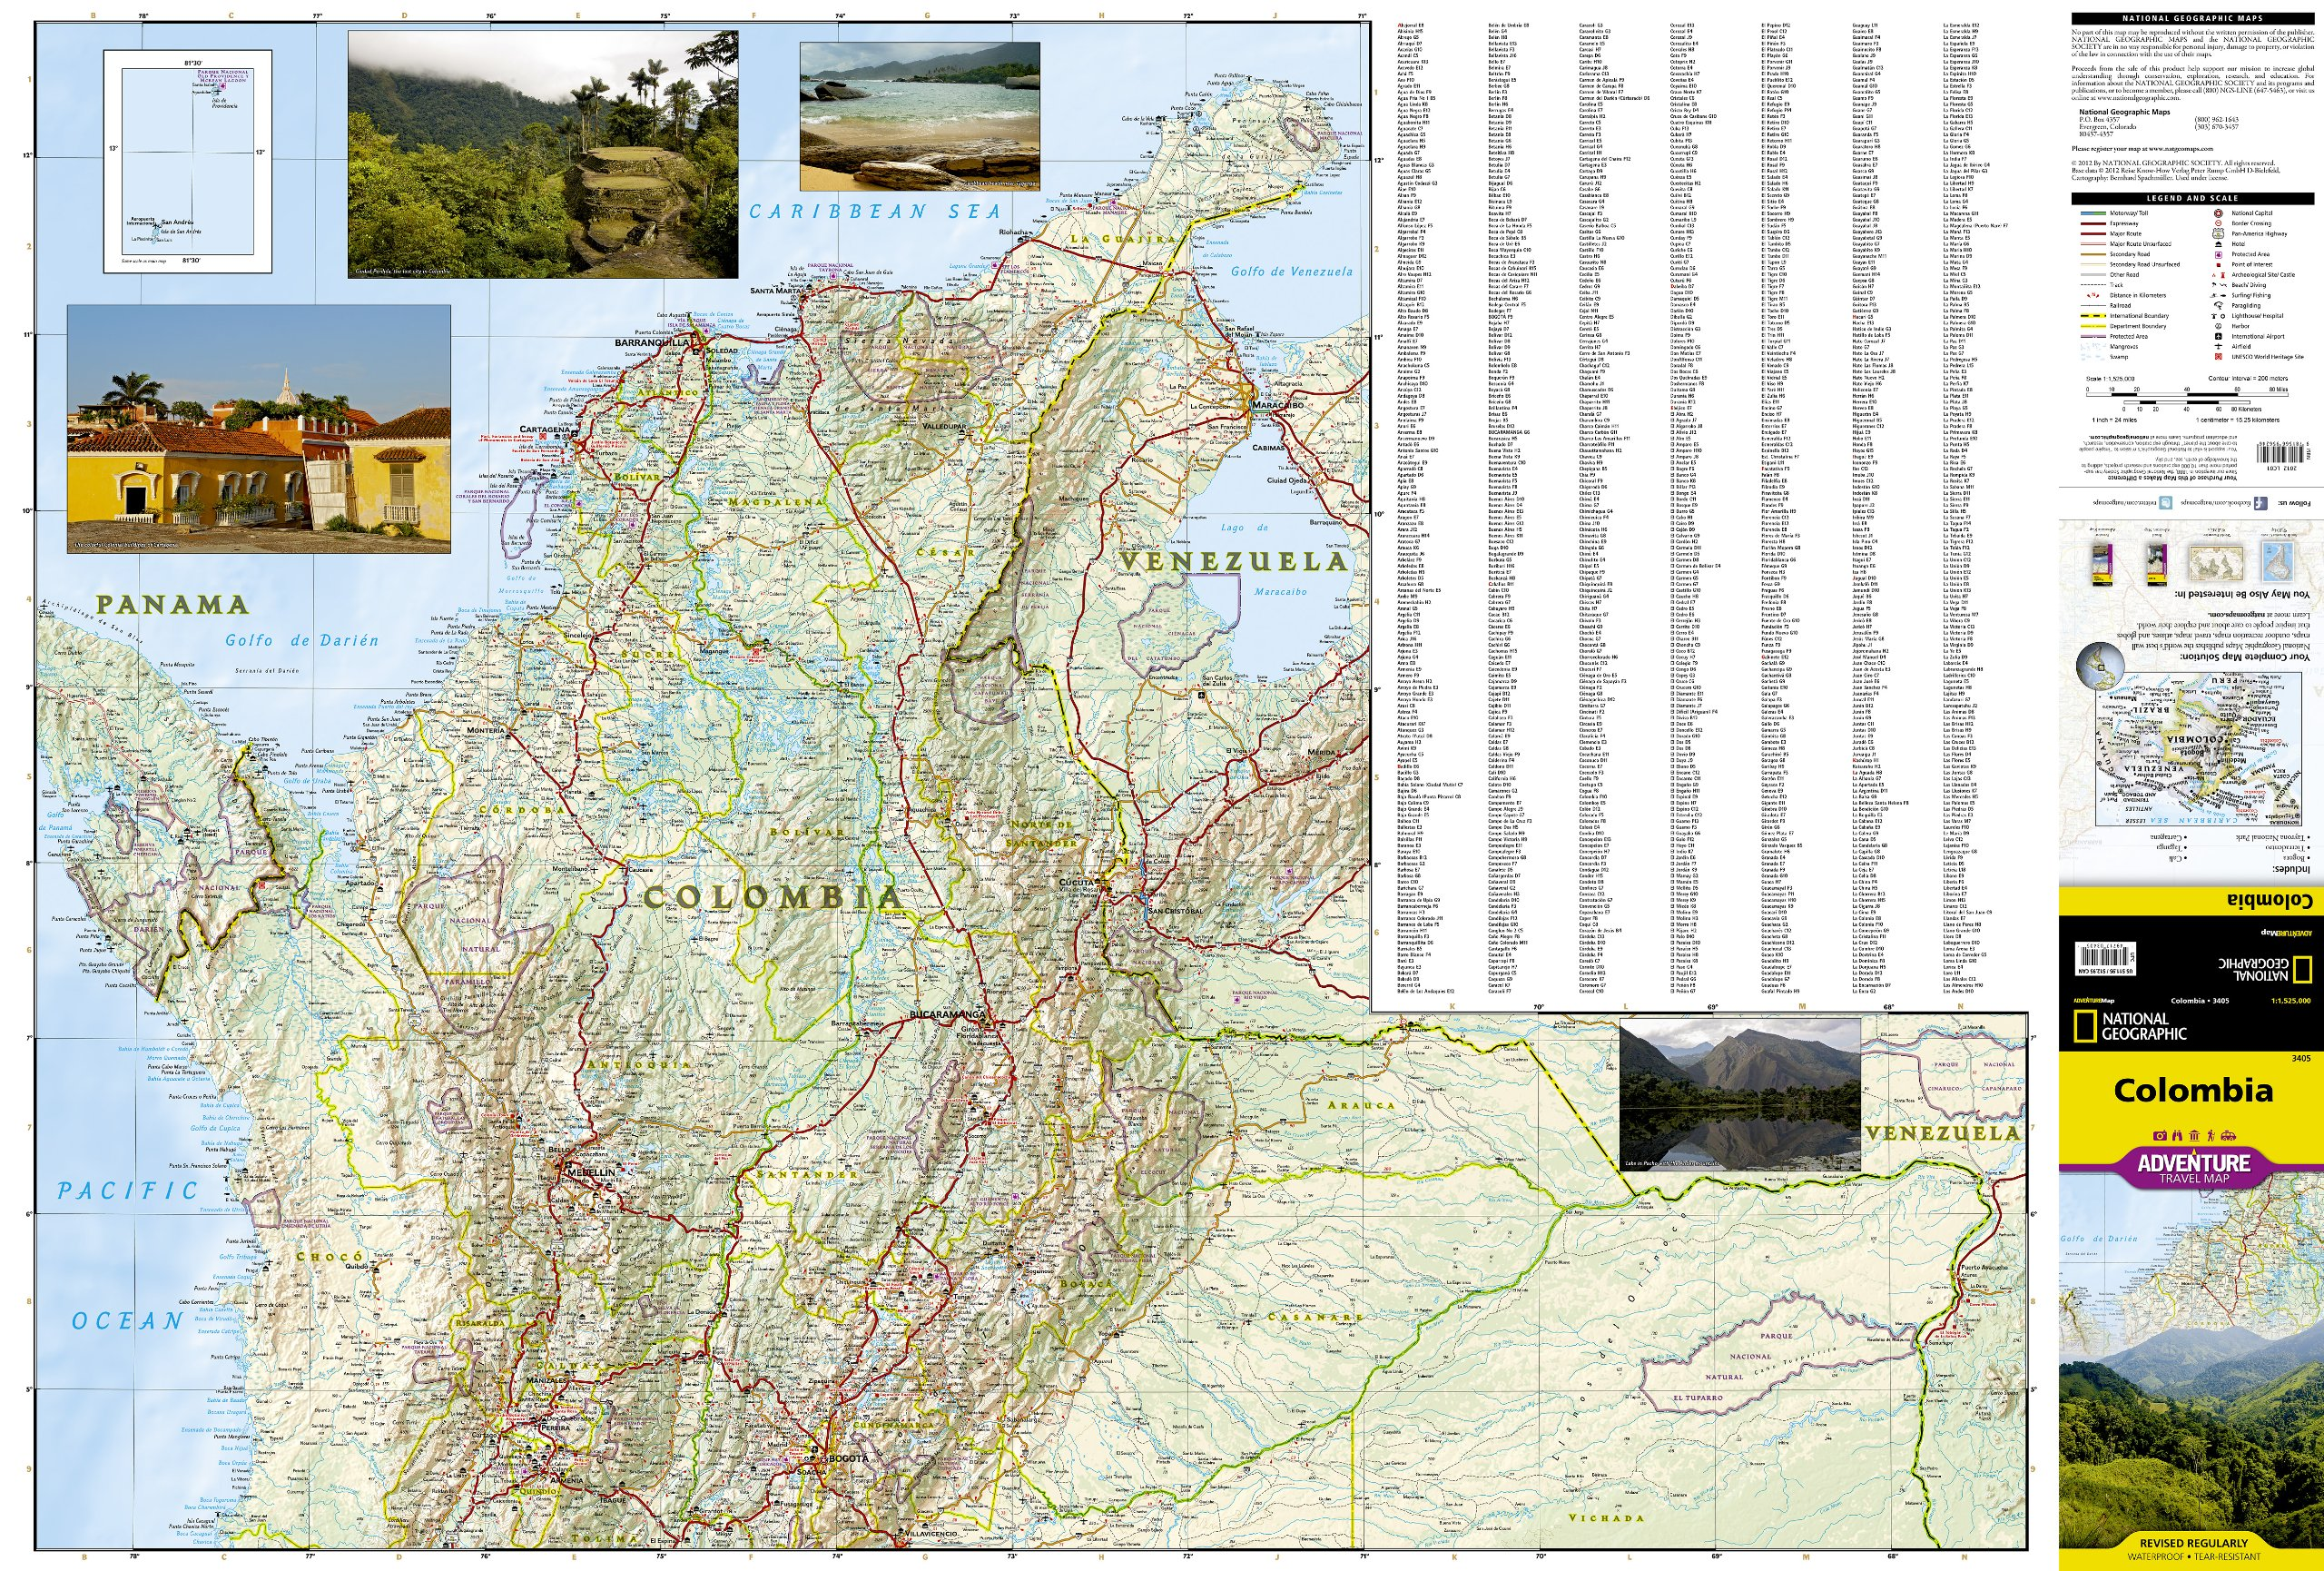 Colombia National Geographic Adventure Map National Geographic